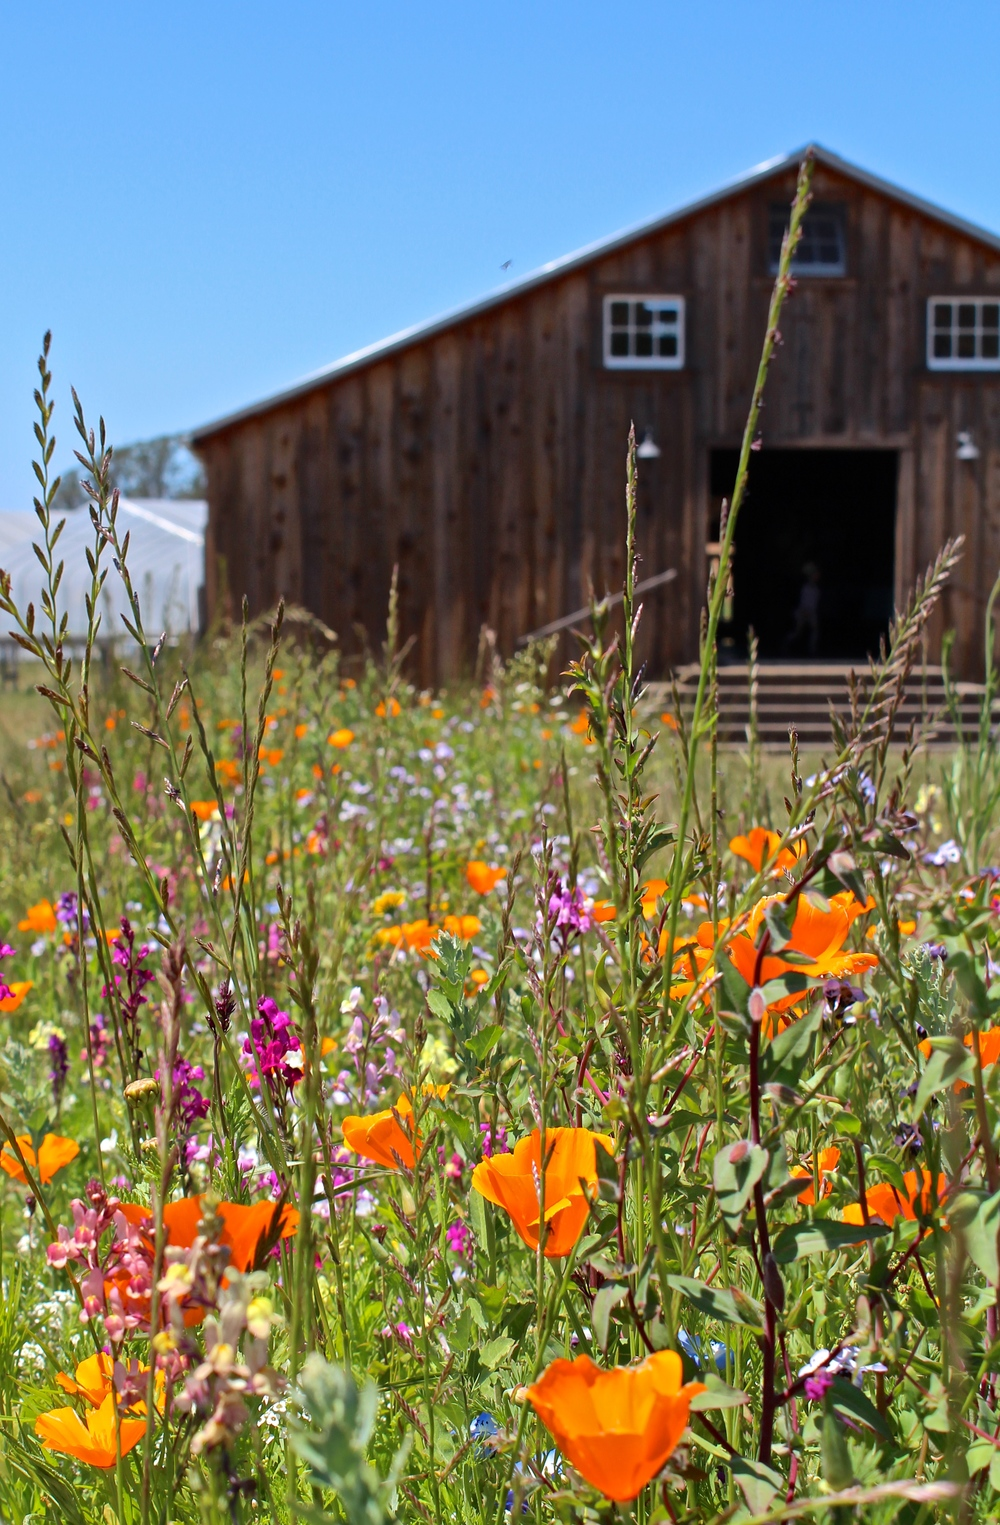 Wildflowers in from of the barn